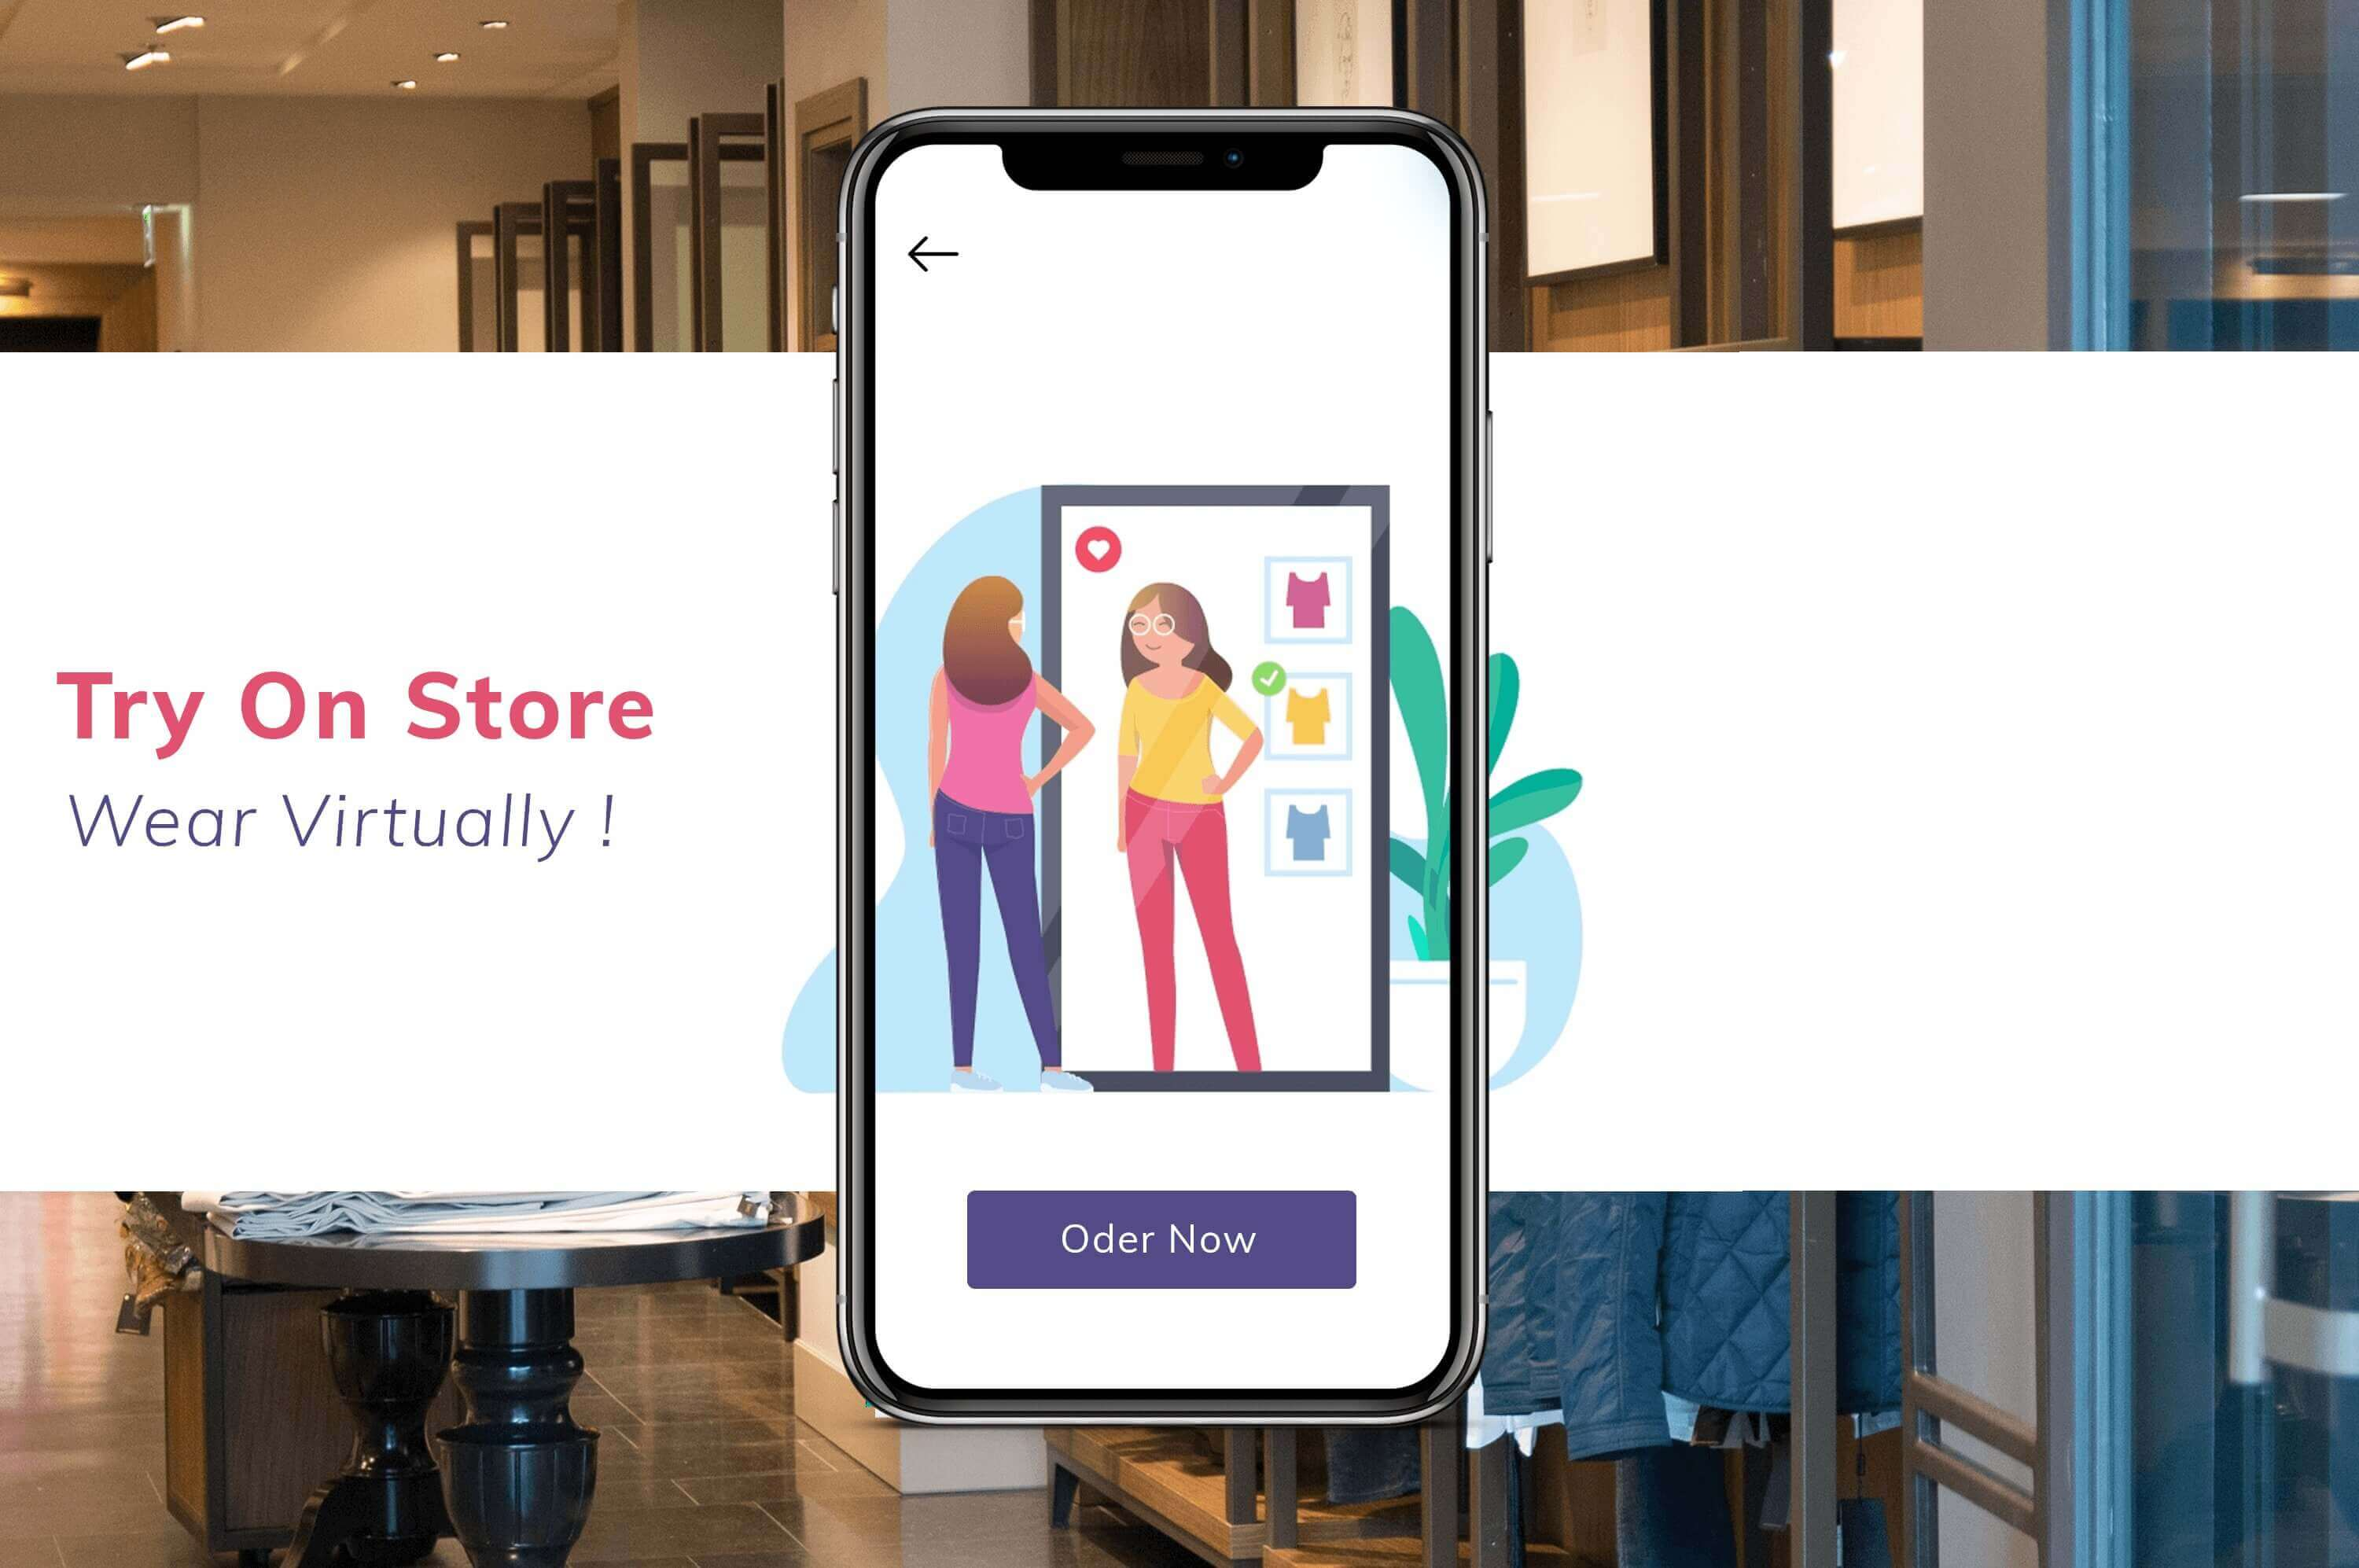 The try on store